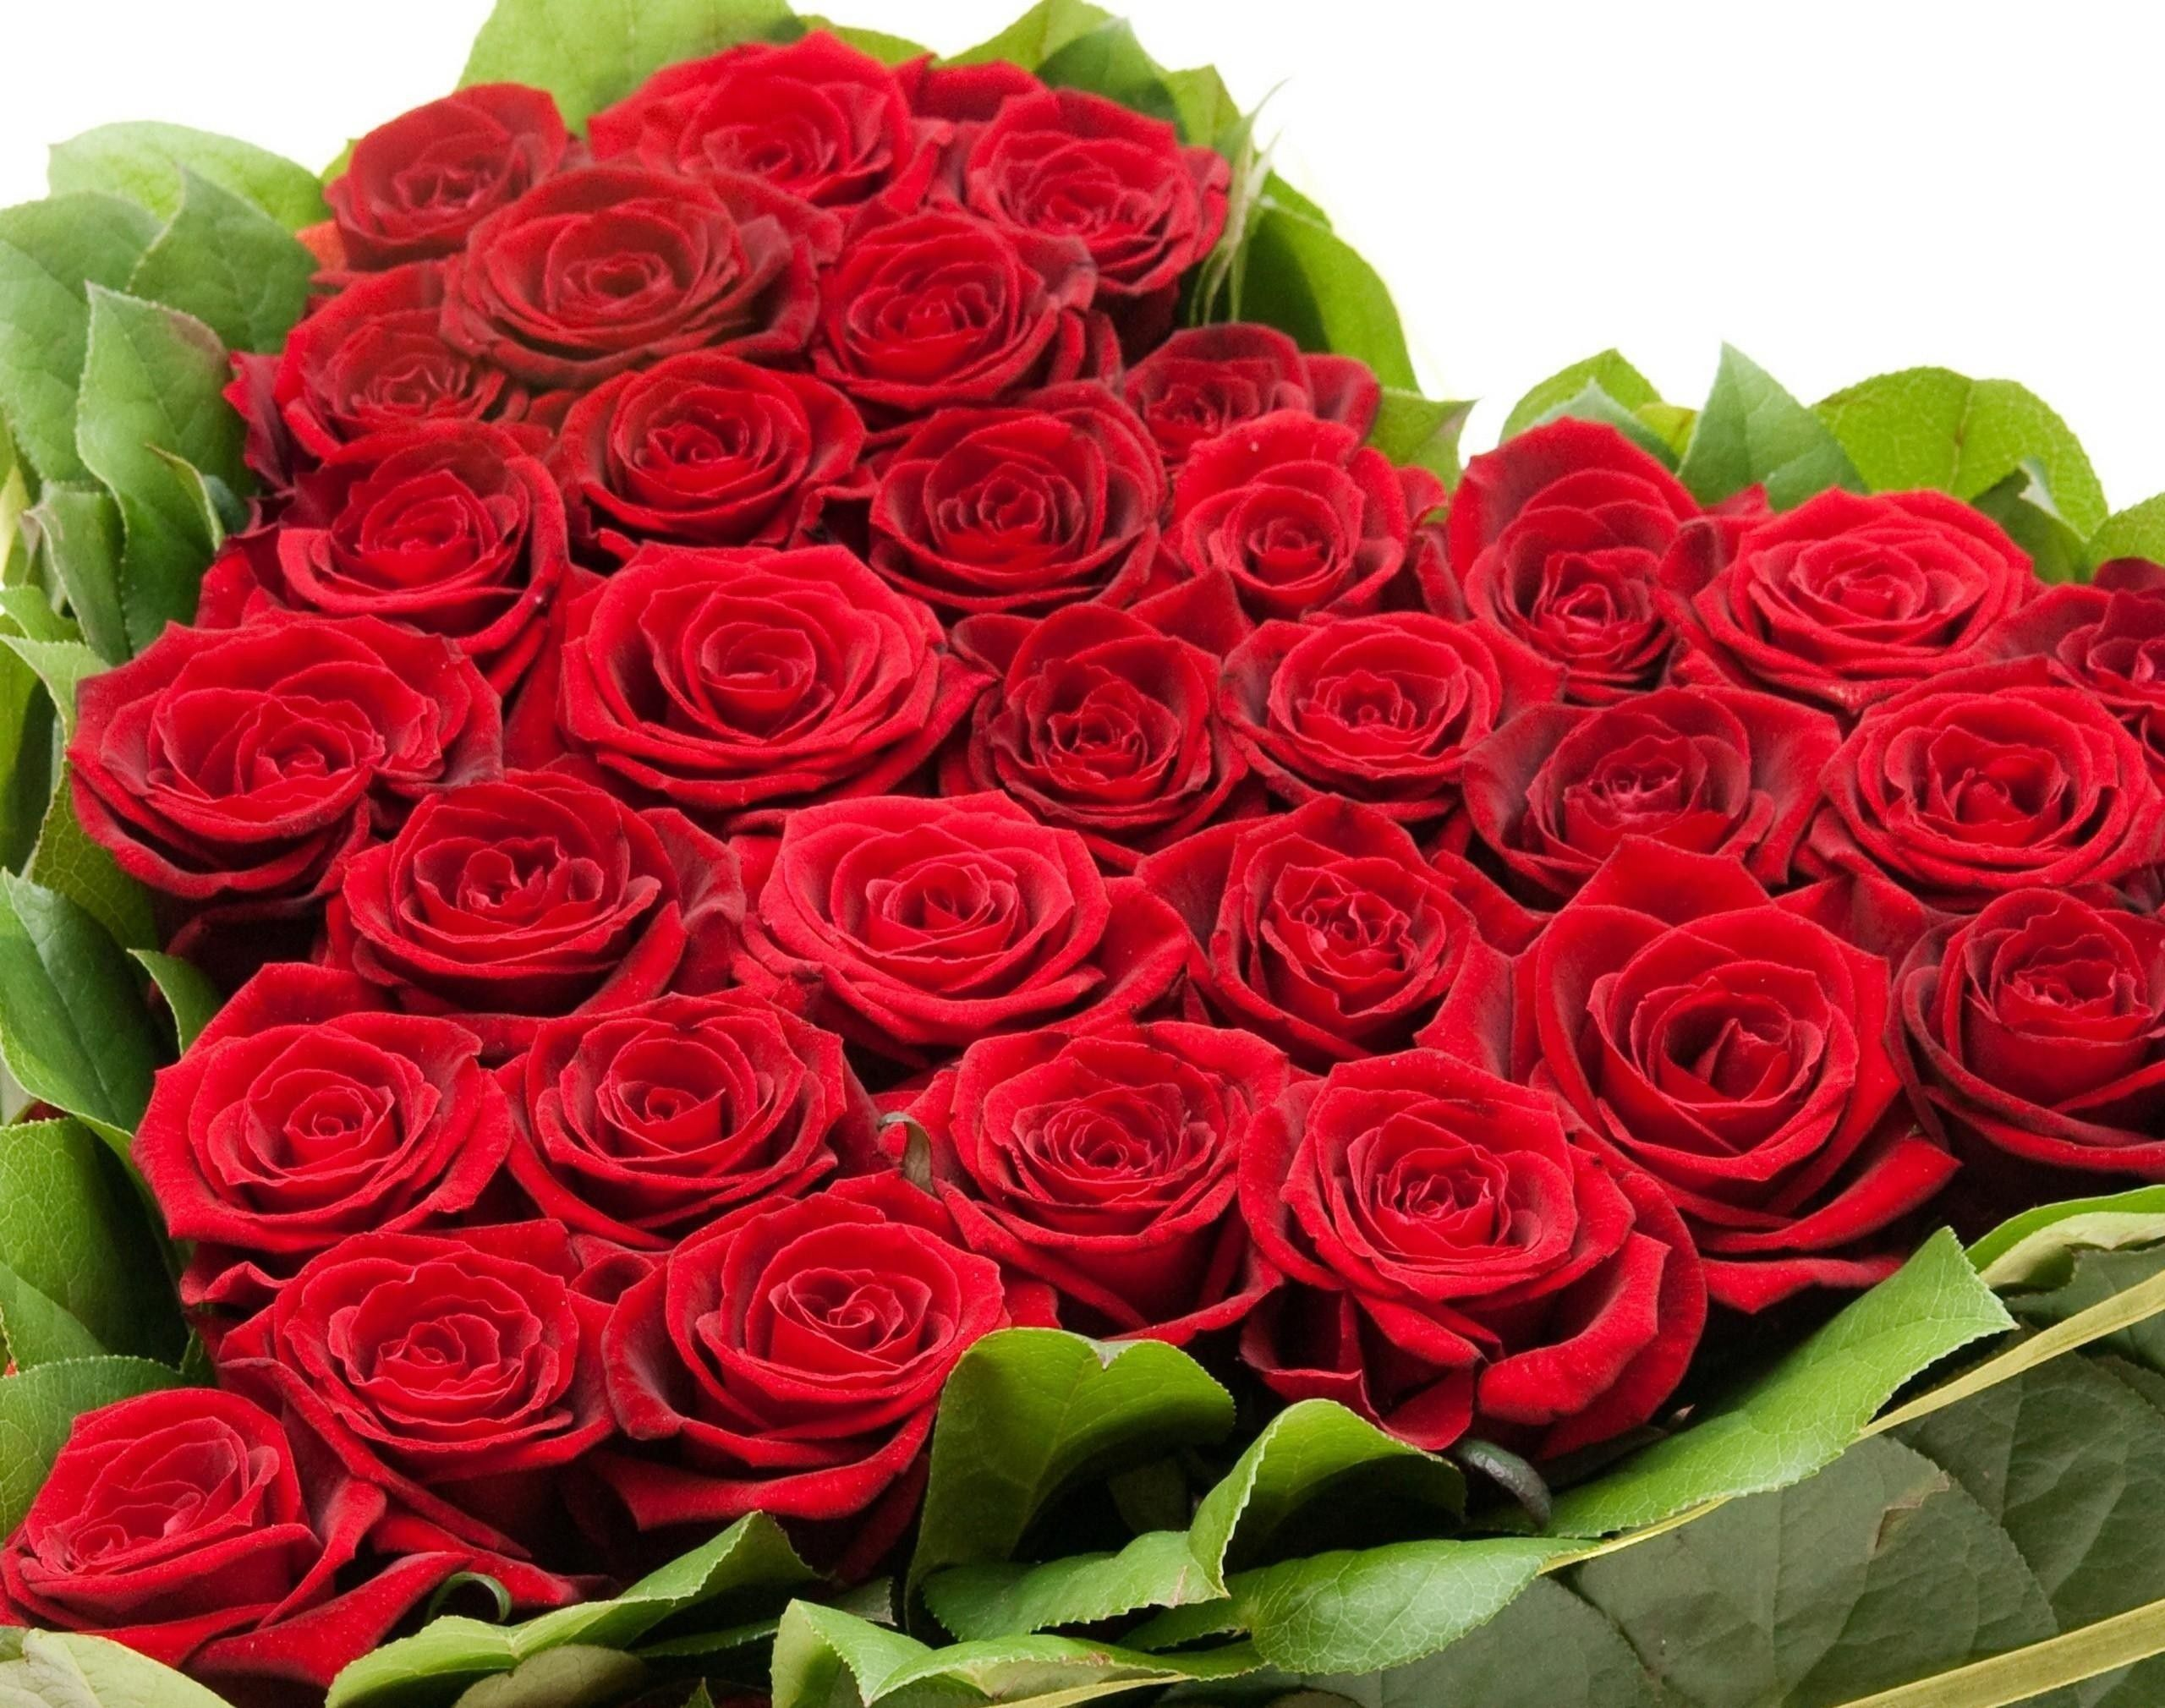 Bunch of flowers wallpapers backgrounds - Bunch of roses hd images ...